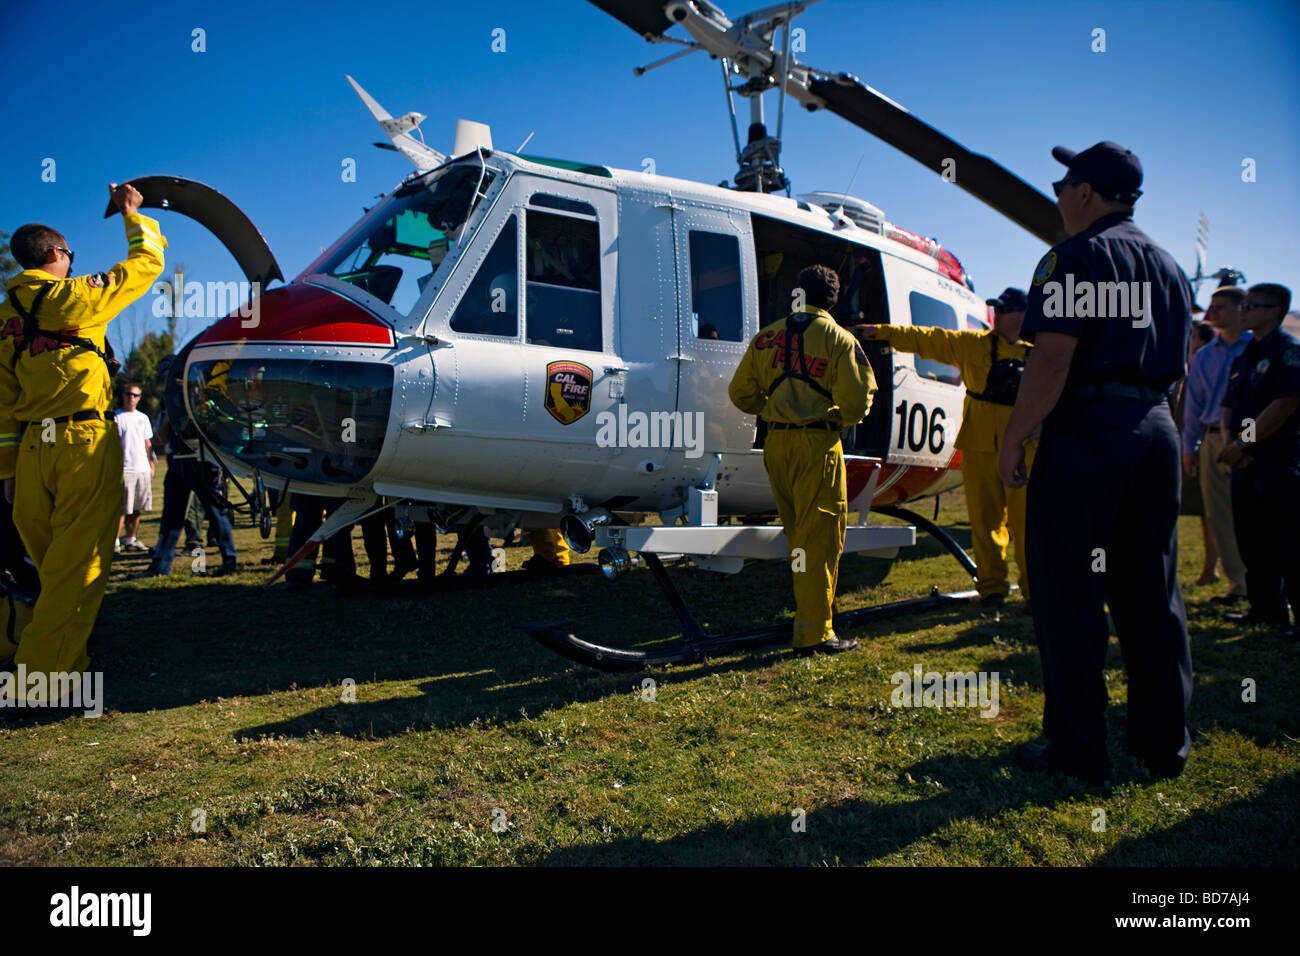 CAL Fire CDF - California Department of Forestry and Fire Protection training exercise with San Jose, CA Fire Department - Stock Image